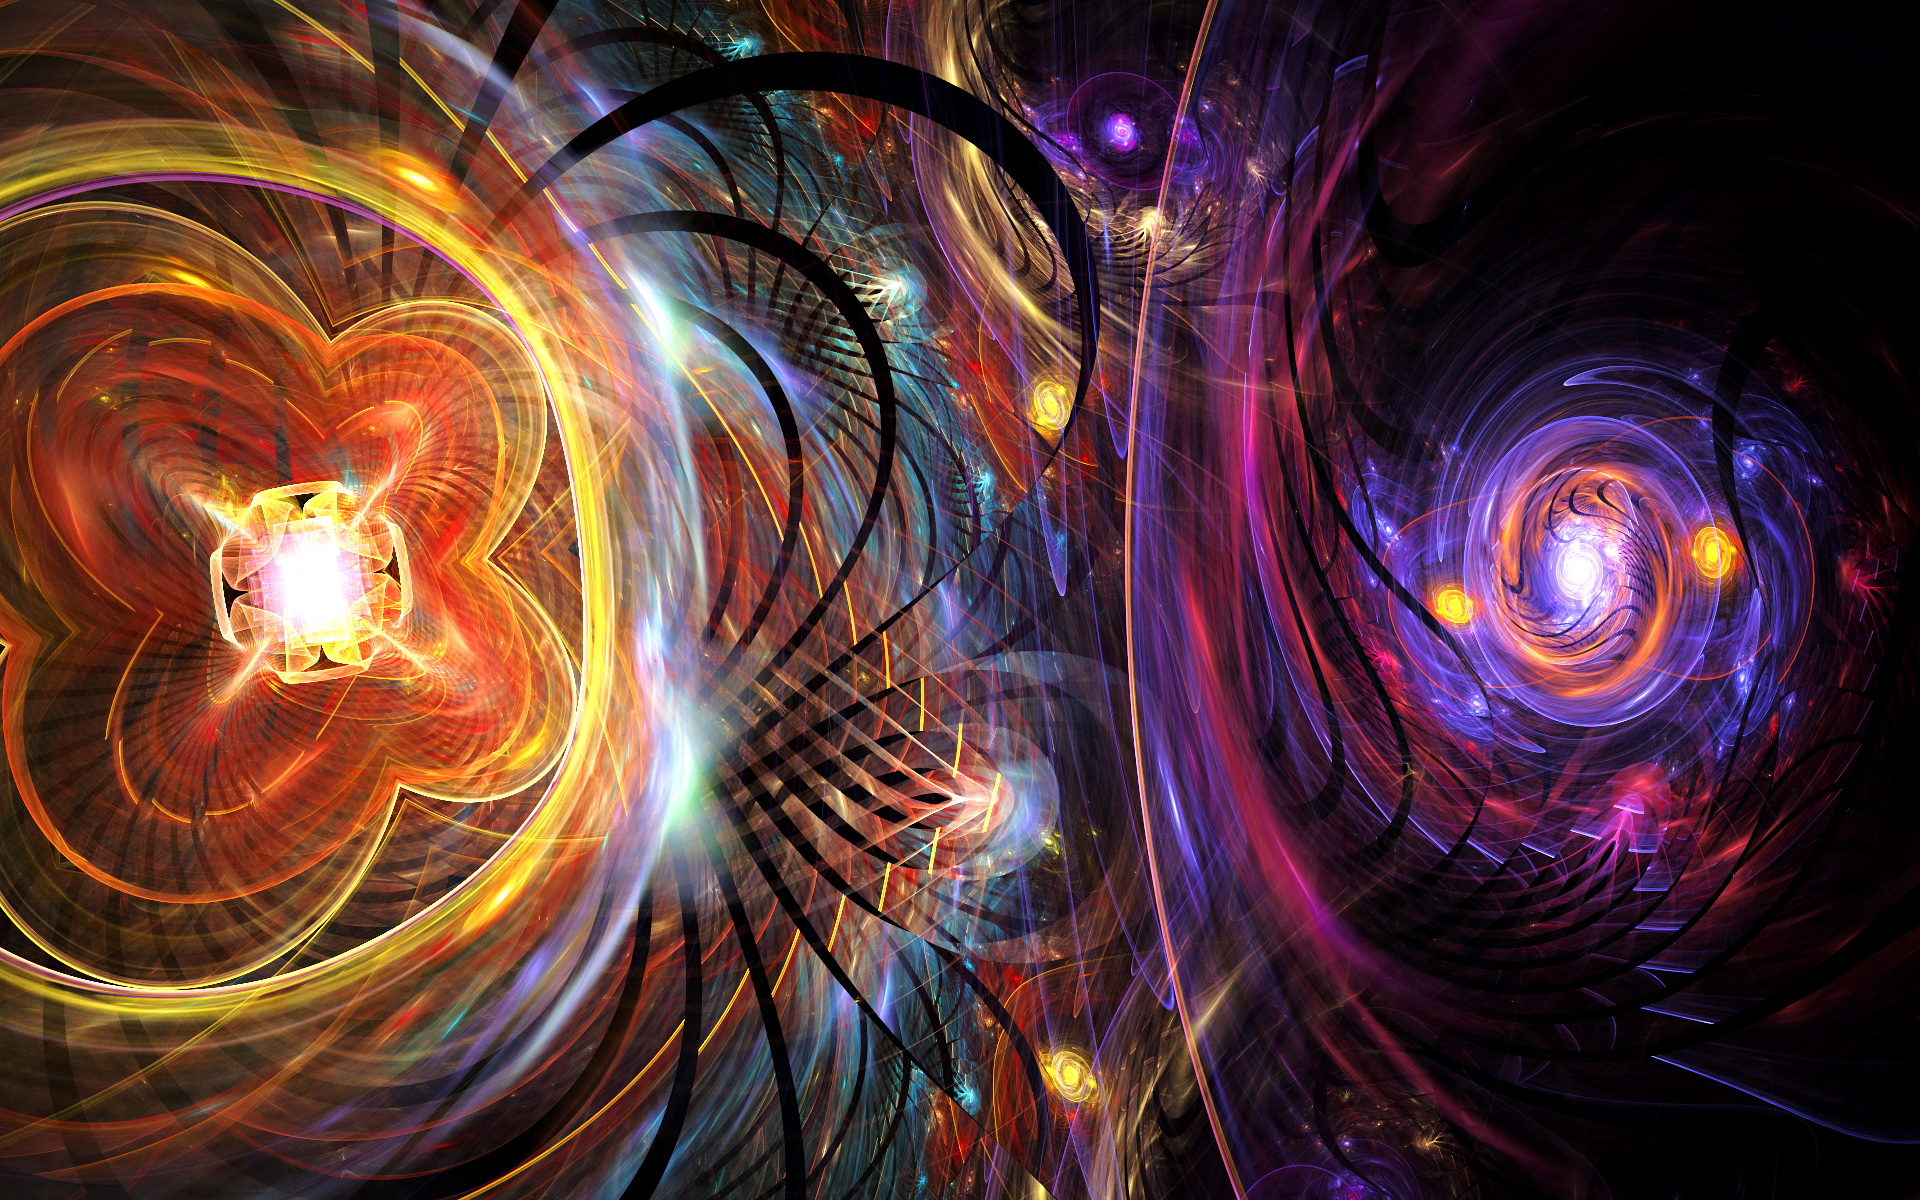 techiebloggercomwp contentuploads201201Trippy Wallpaperjpg 1920x1200